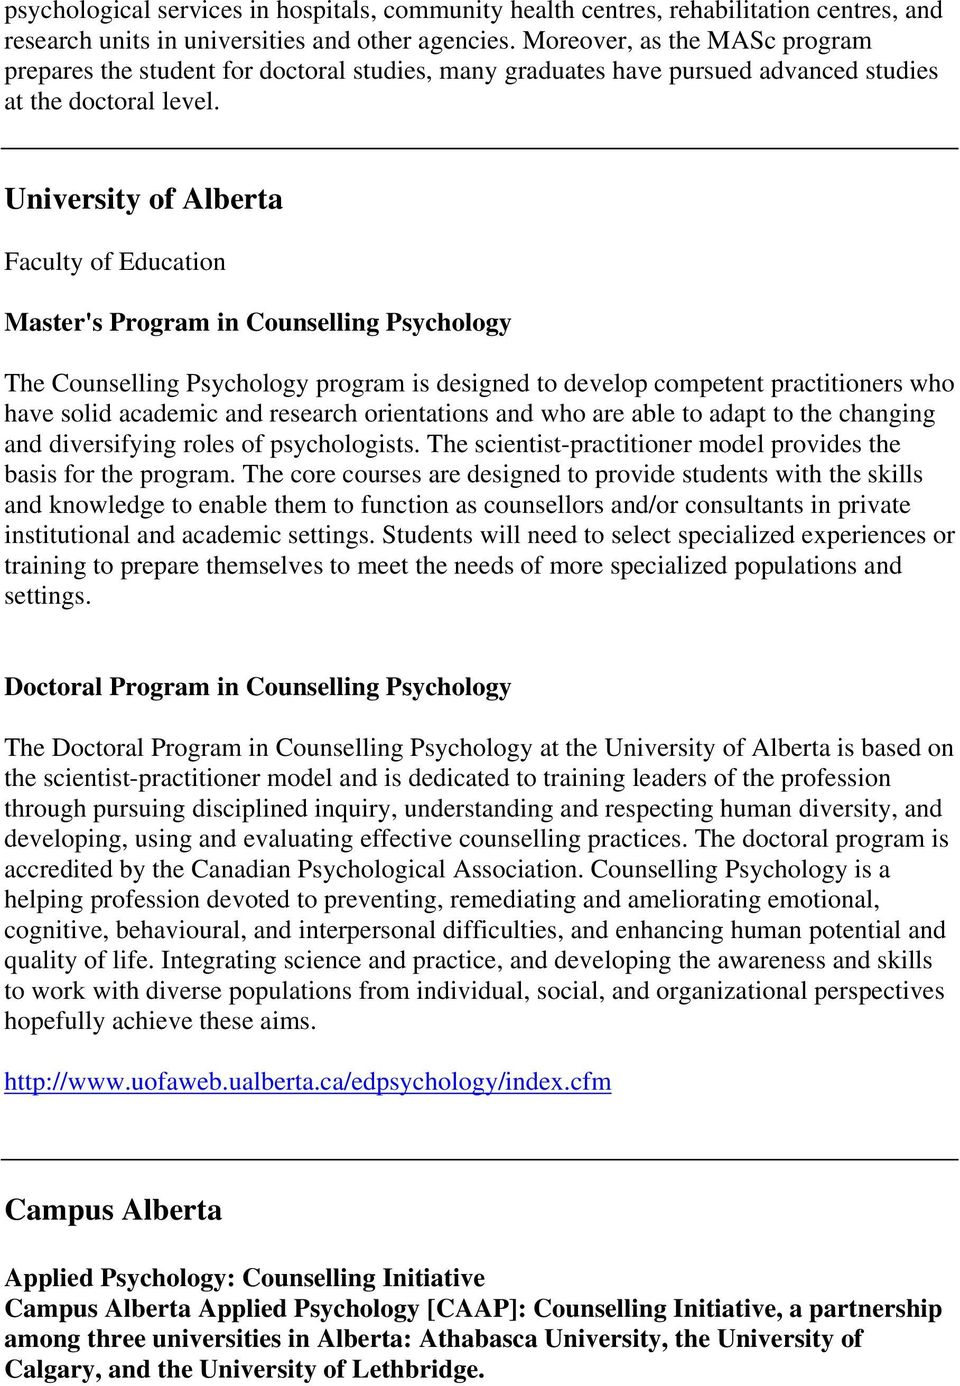 University of Alberta Faculty of Education Master's Program in Counselling Psychology The Counselling Psychology program is designed to develop competent practitioners who have solid academic and